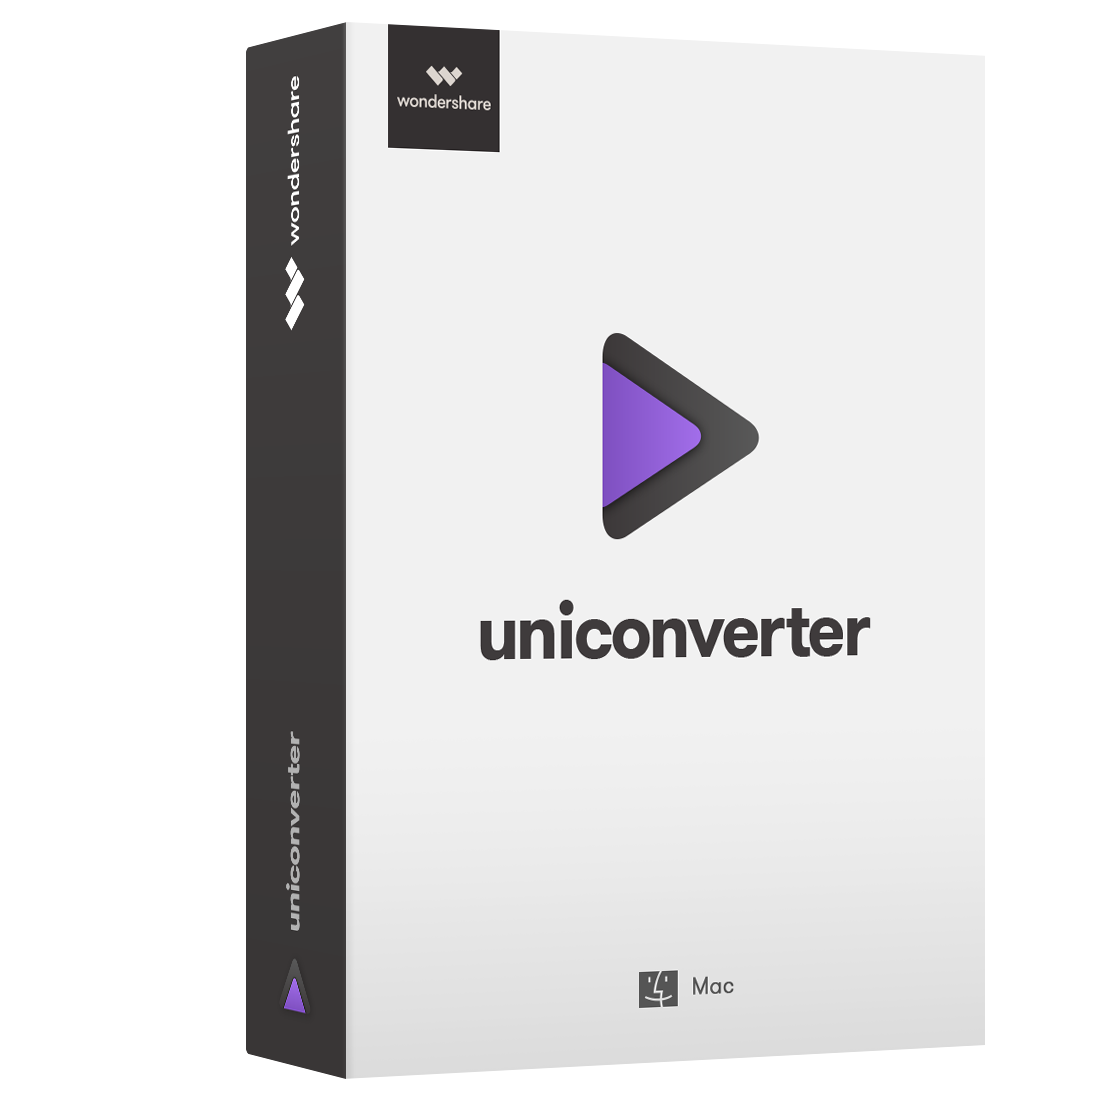 https://images.iskysoft.com/images/box/is-imedia-converter-deluxe-mac-md.png